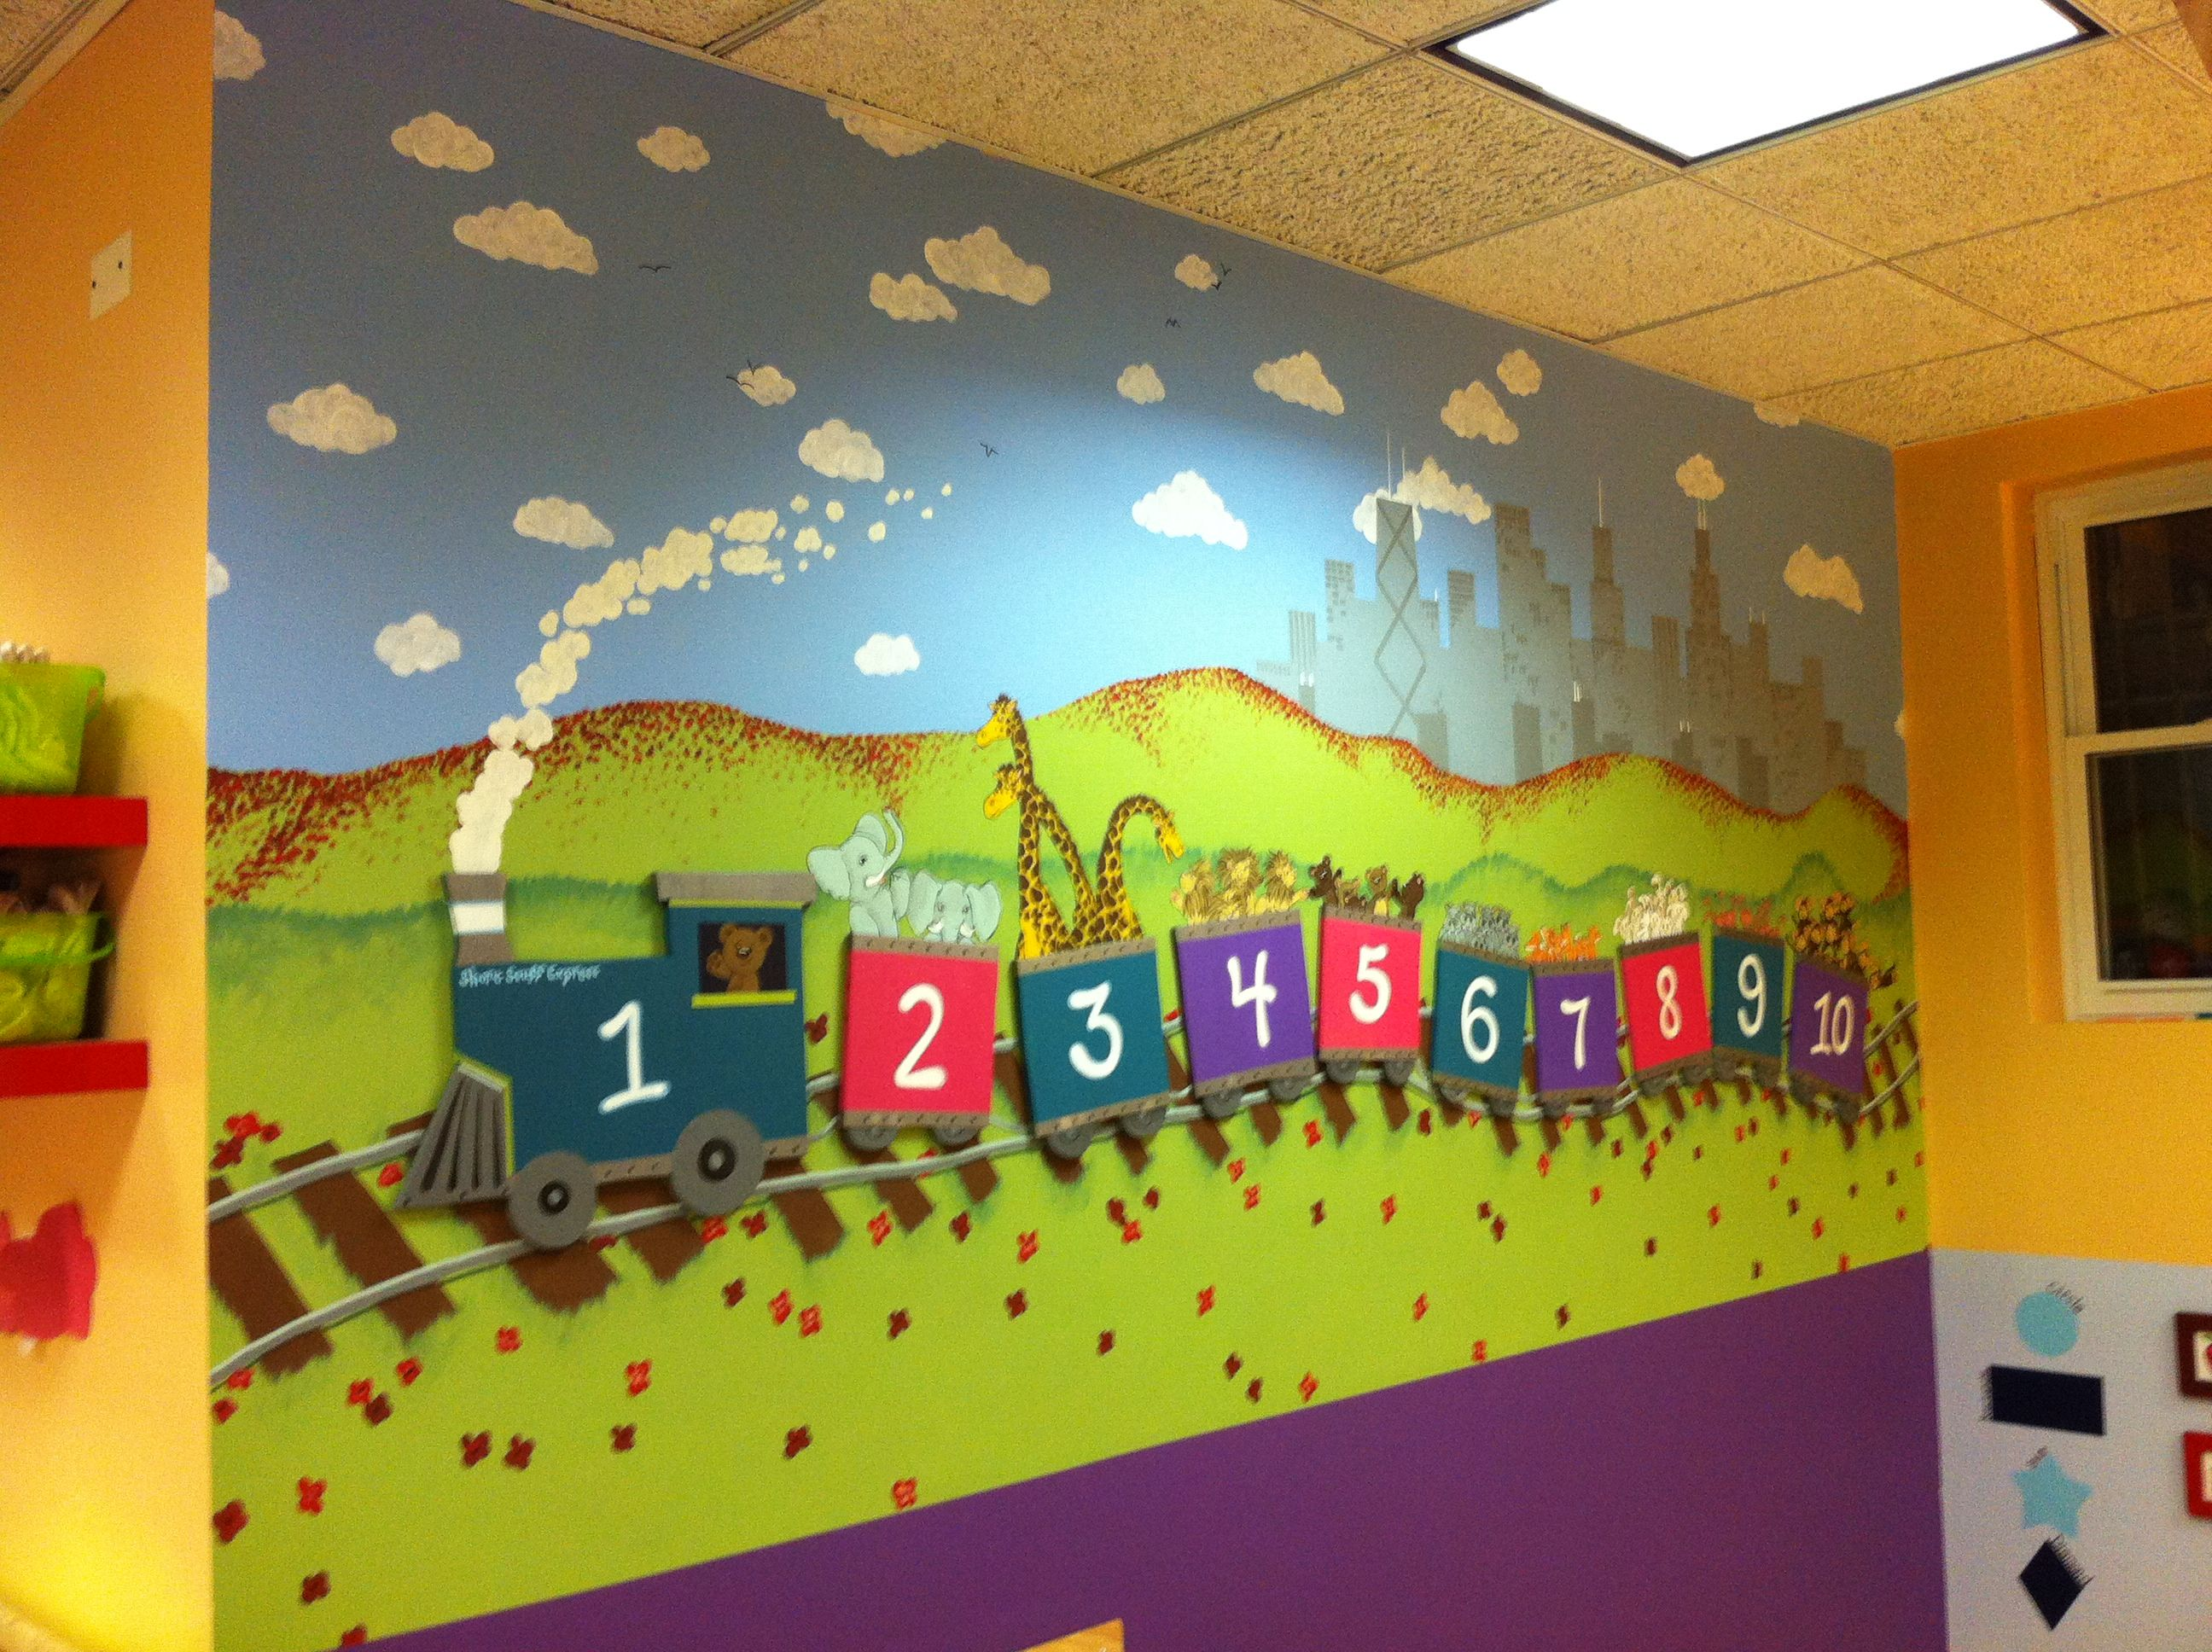 This is the numbers mural at an early education for Mural designs